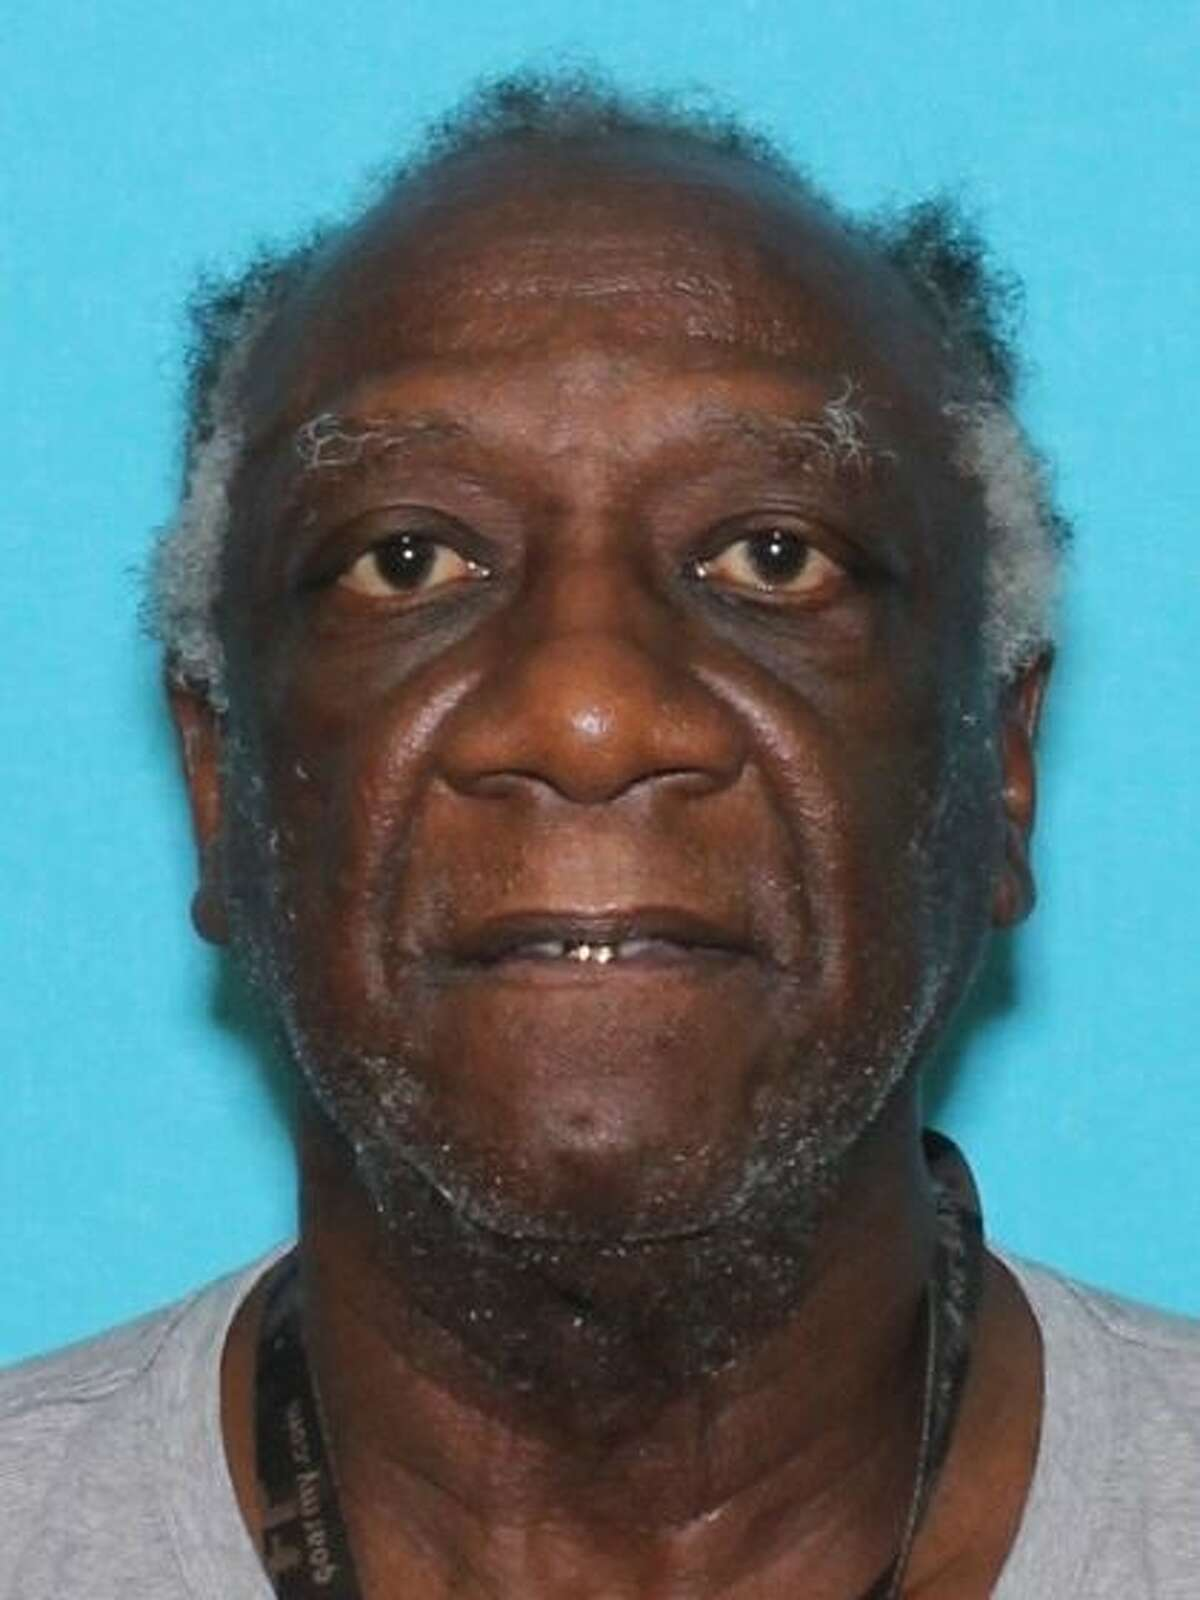 Oliver London Jr., 72, was found dead in his home on June 23, 2019. Police are looking for information on a woman who may be connected to his death.